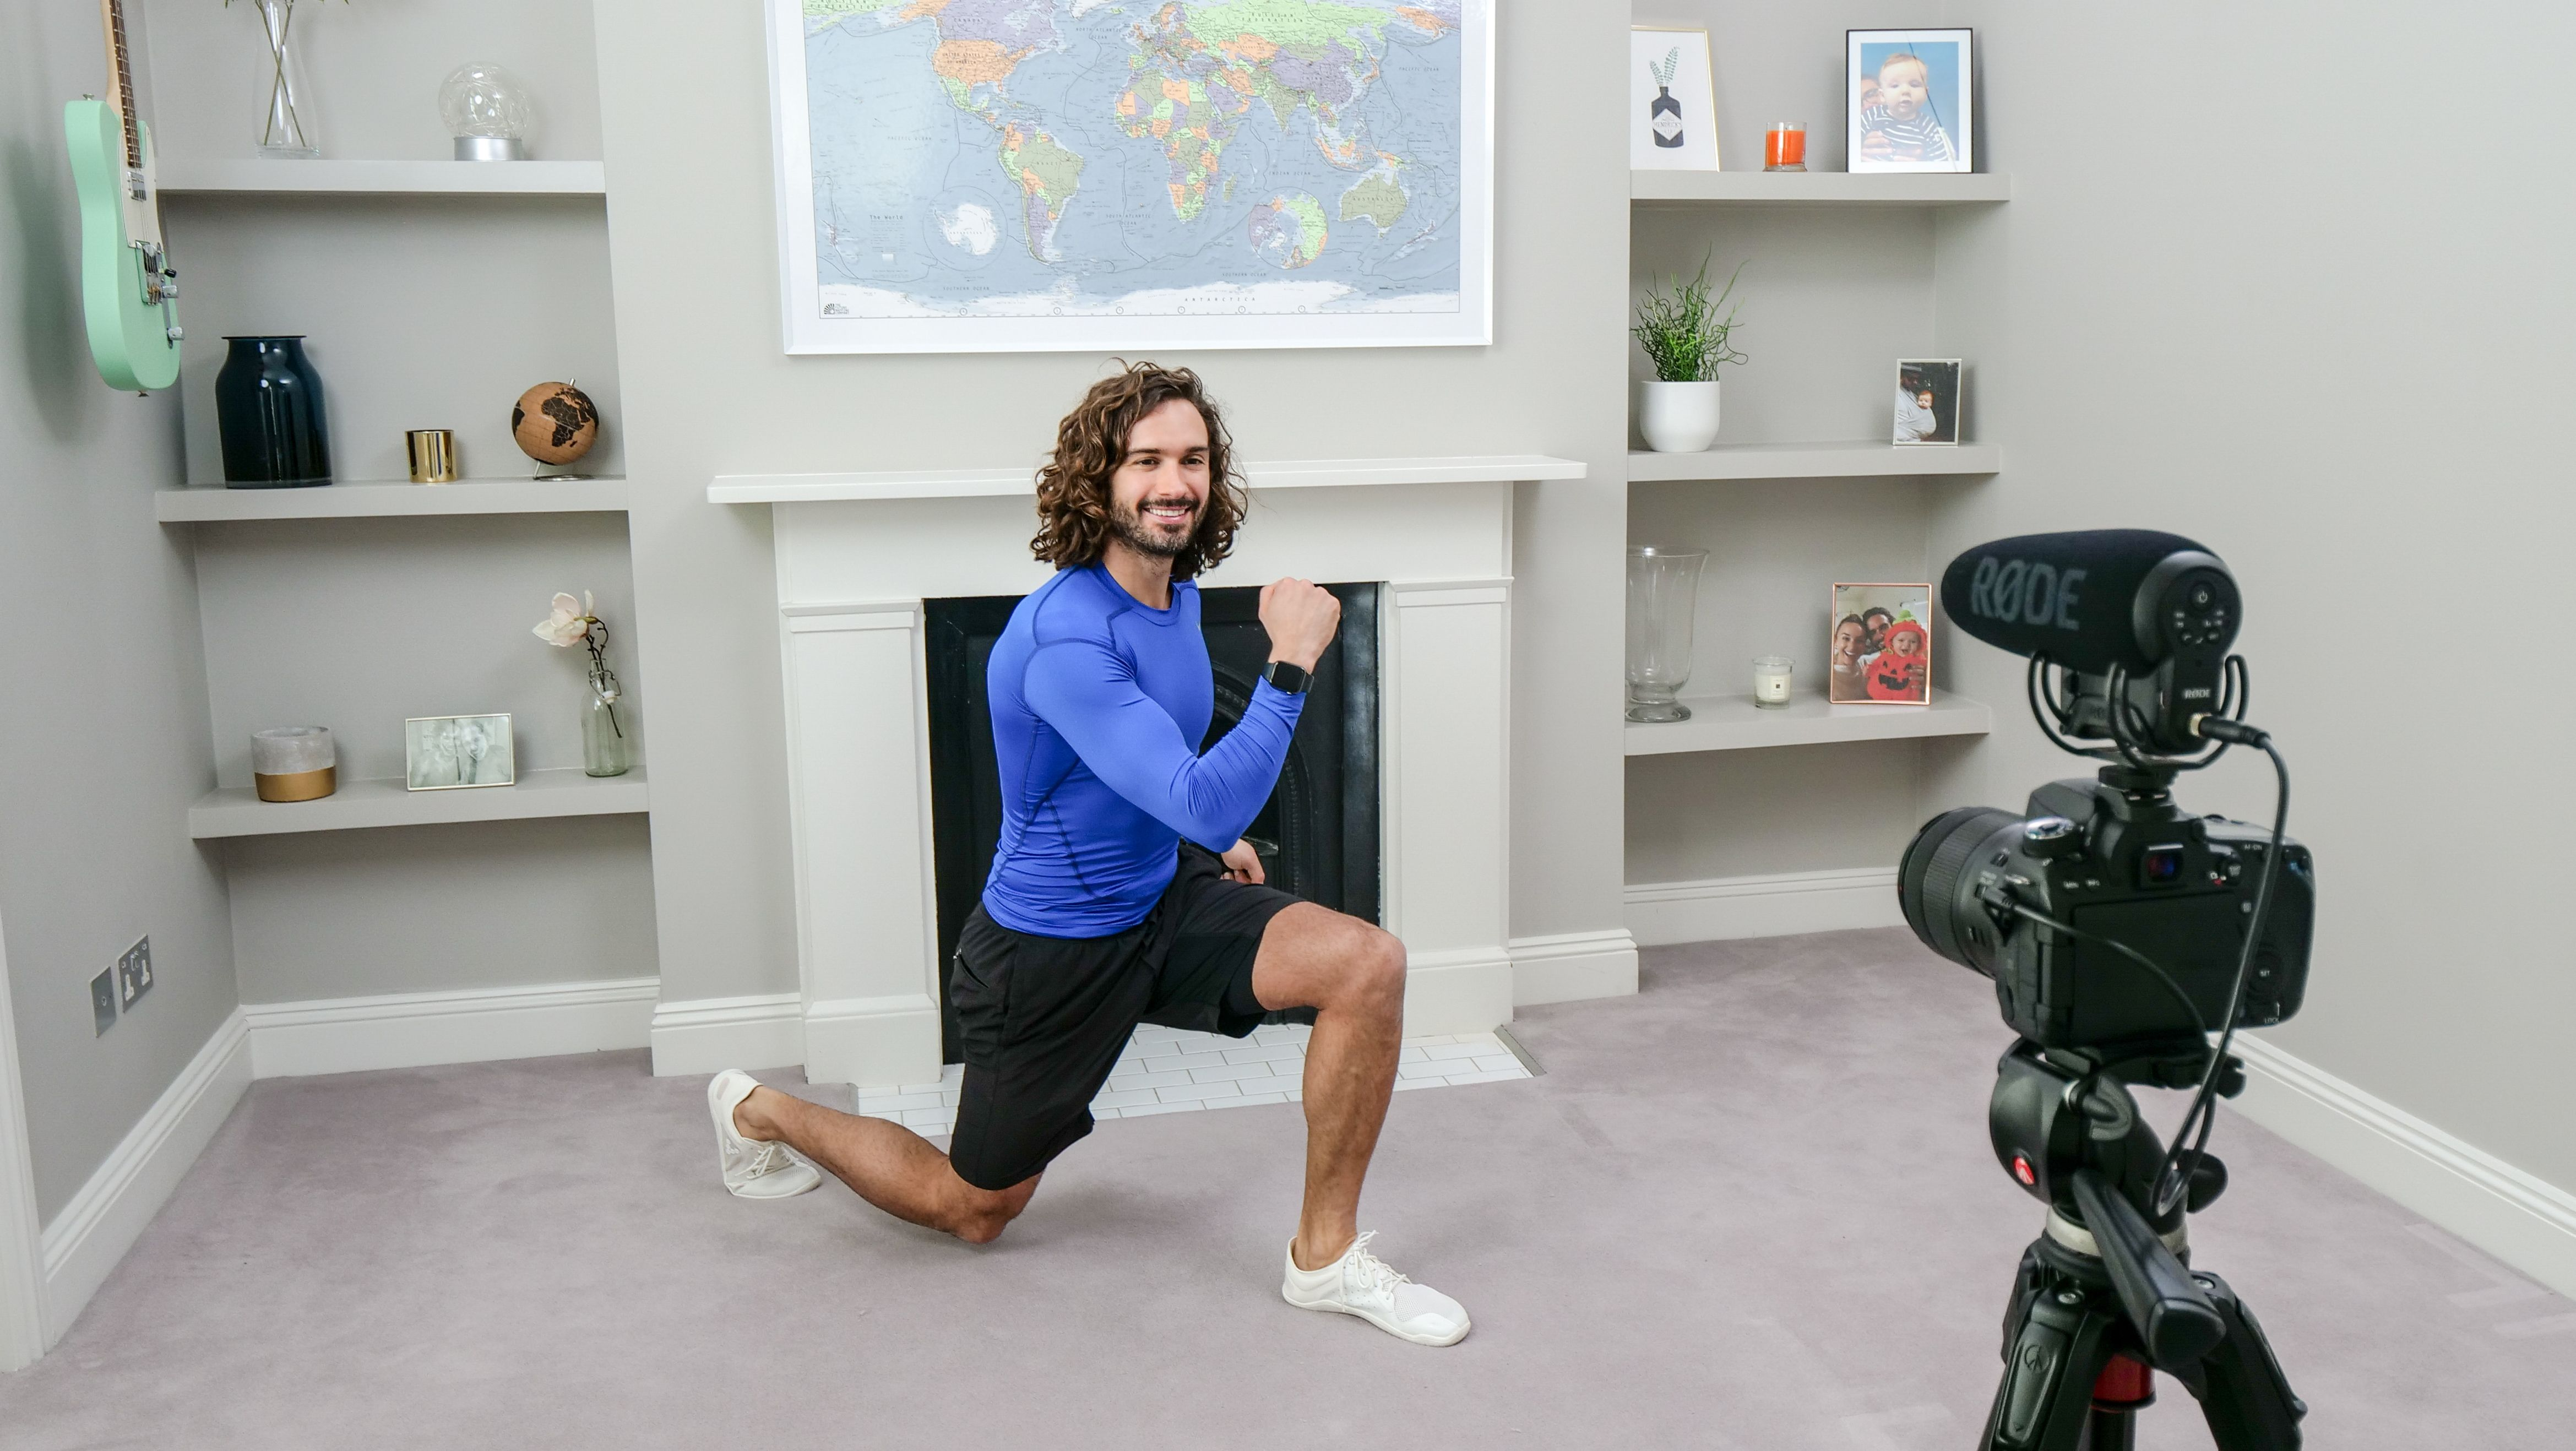 Joe Wicks' 5 Fail-Safe Home Workout Motivation Tips: From 'Do Half' to 'Lead by Example'